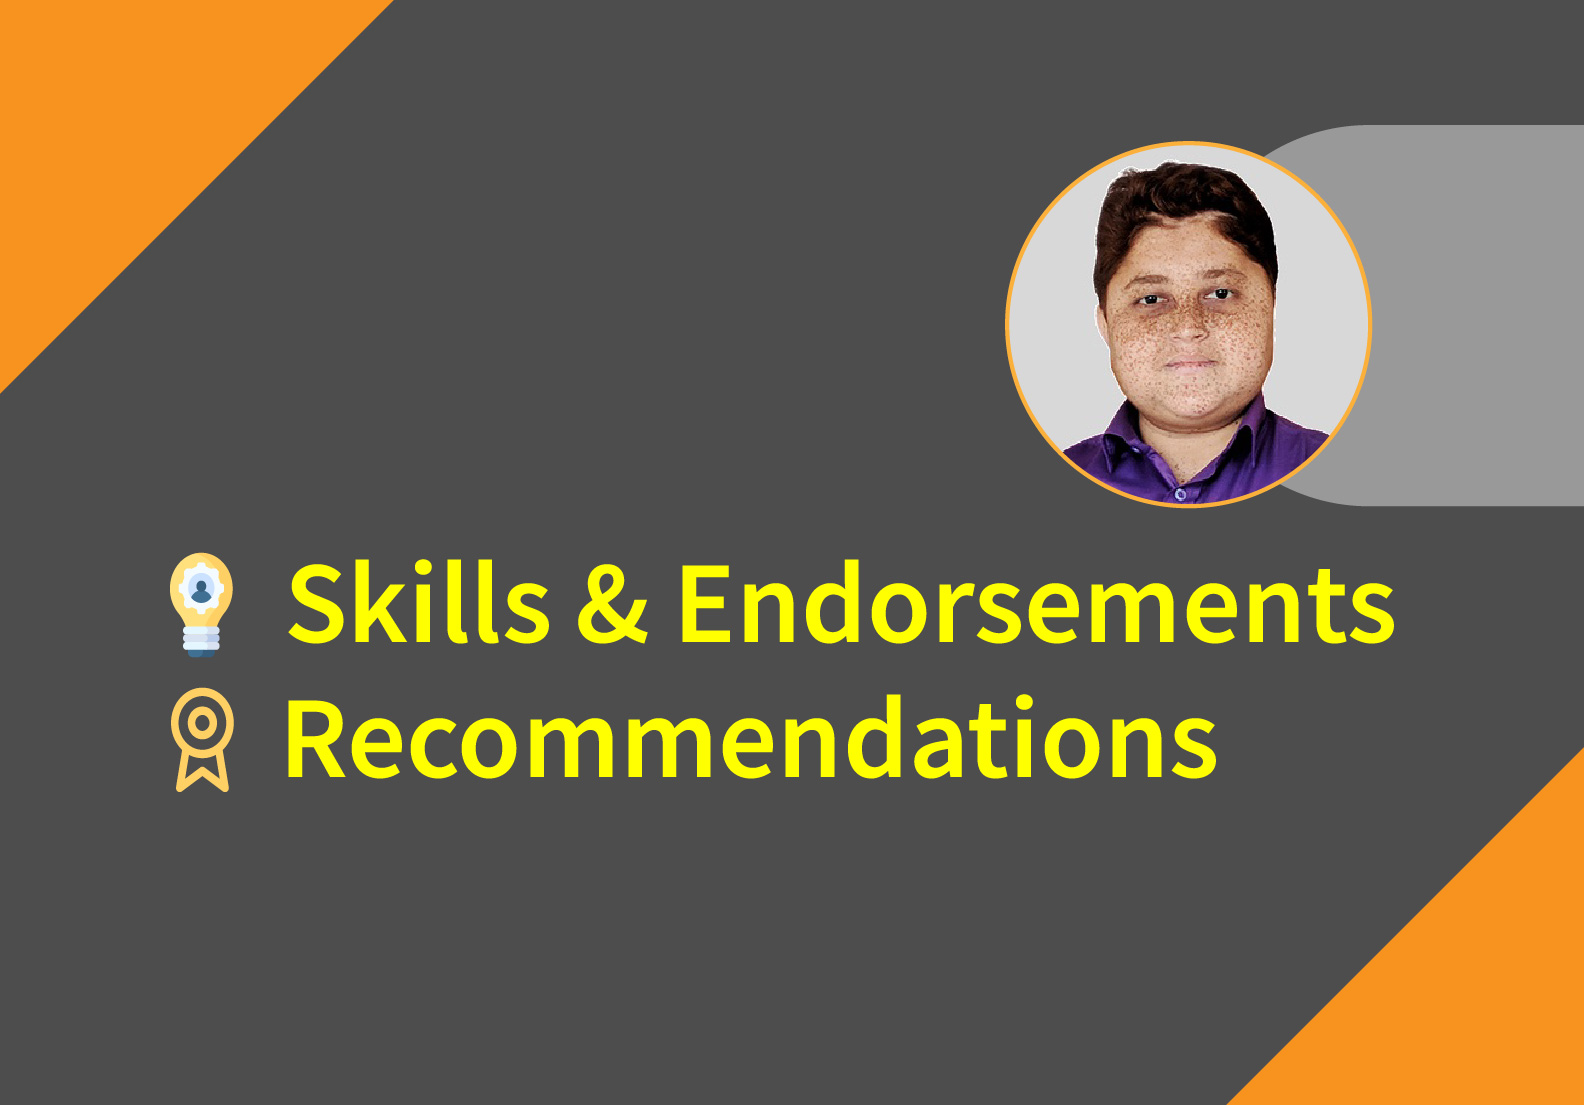 I will endorse your skills and recommend you on LinkedIn